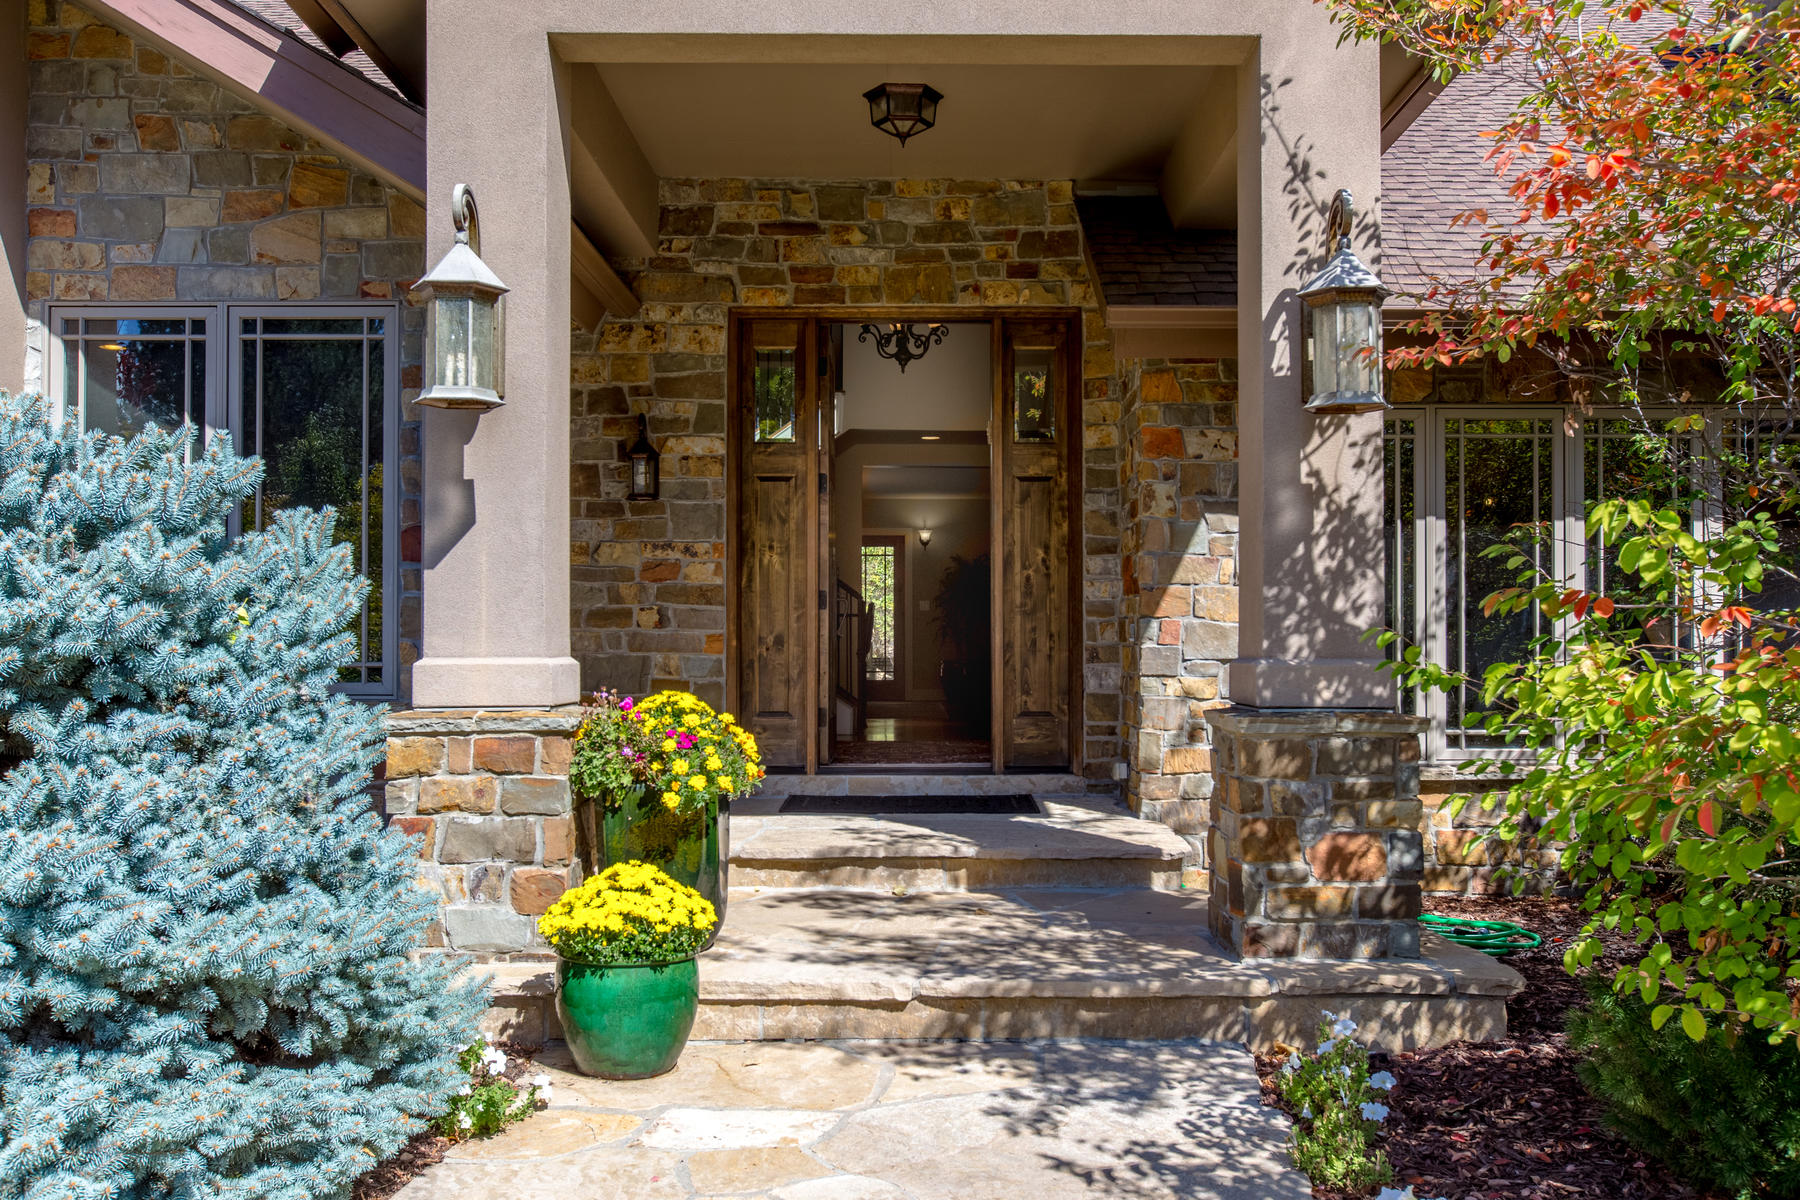 Single Family Home for Active at Peaceful & Welcoming Retreat Backing to The High Line Canal 4245 S Bellaire Circle Cherry Hills Village, Colorado 80113 United States